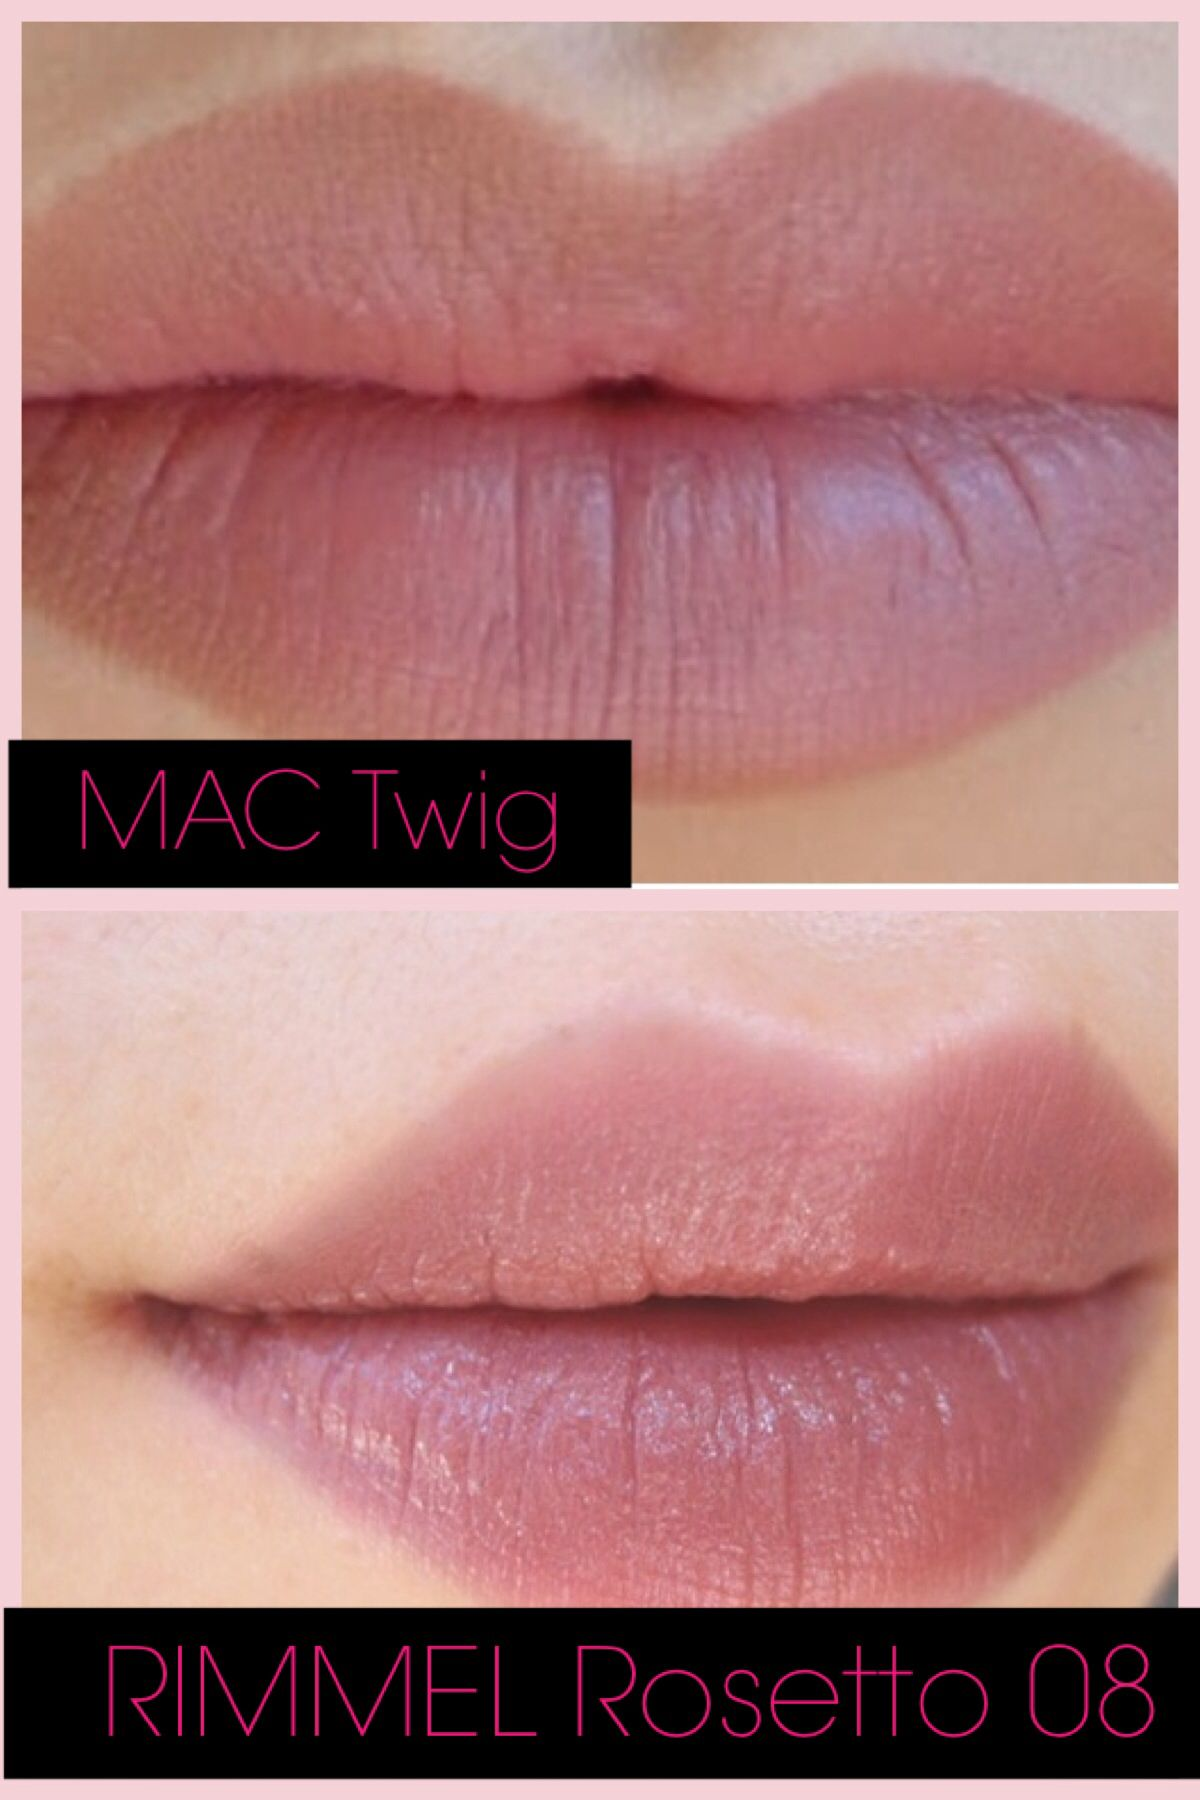 Makeup Dupe! Soft Pink/nude Shade Lovw Rimmels Shade